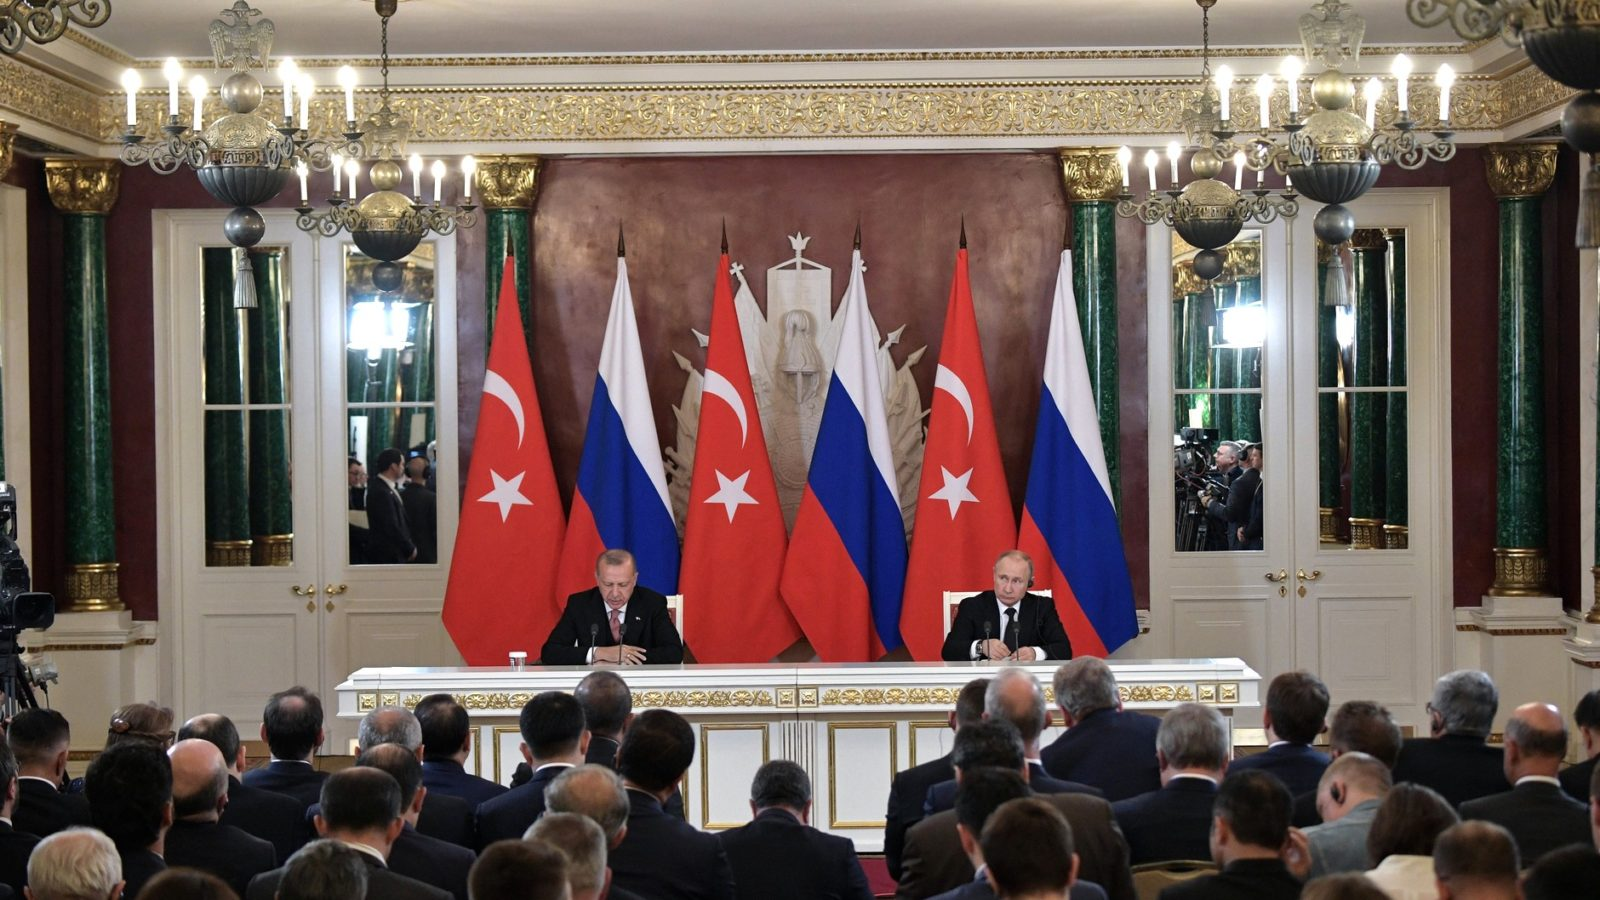 President Putin and President Erdogan sit at a table in front of the Turkish and Russian flags, in front of a room full of reporters.